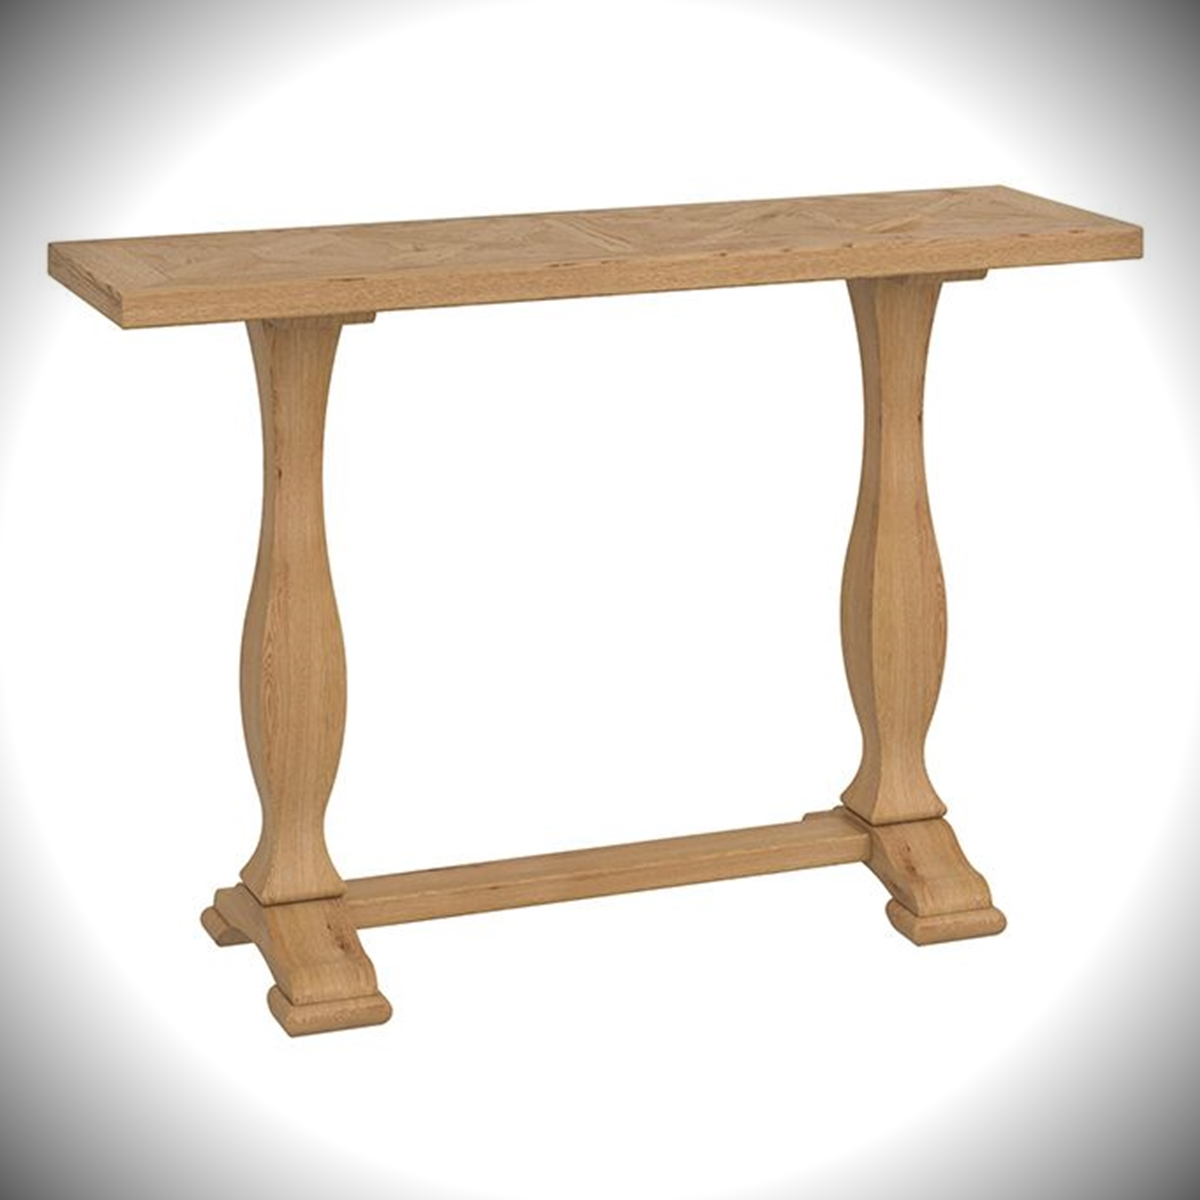 Belgrave Console Table - Rustic Oak